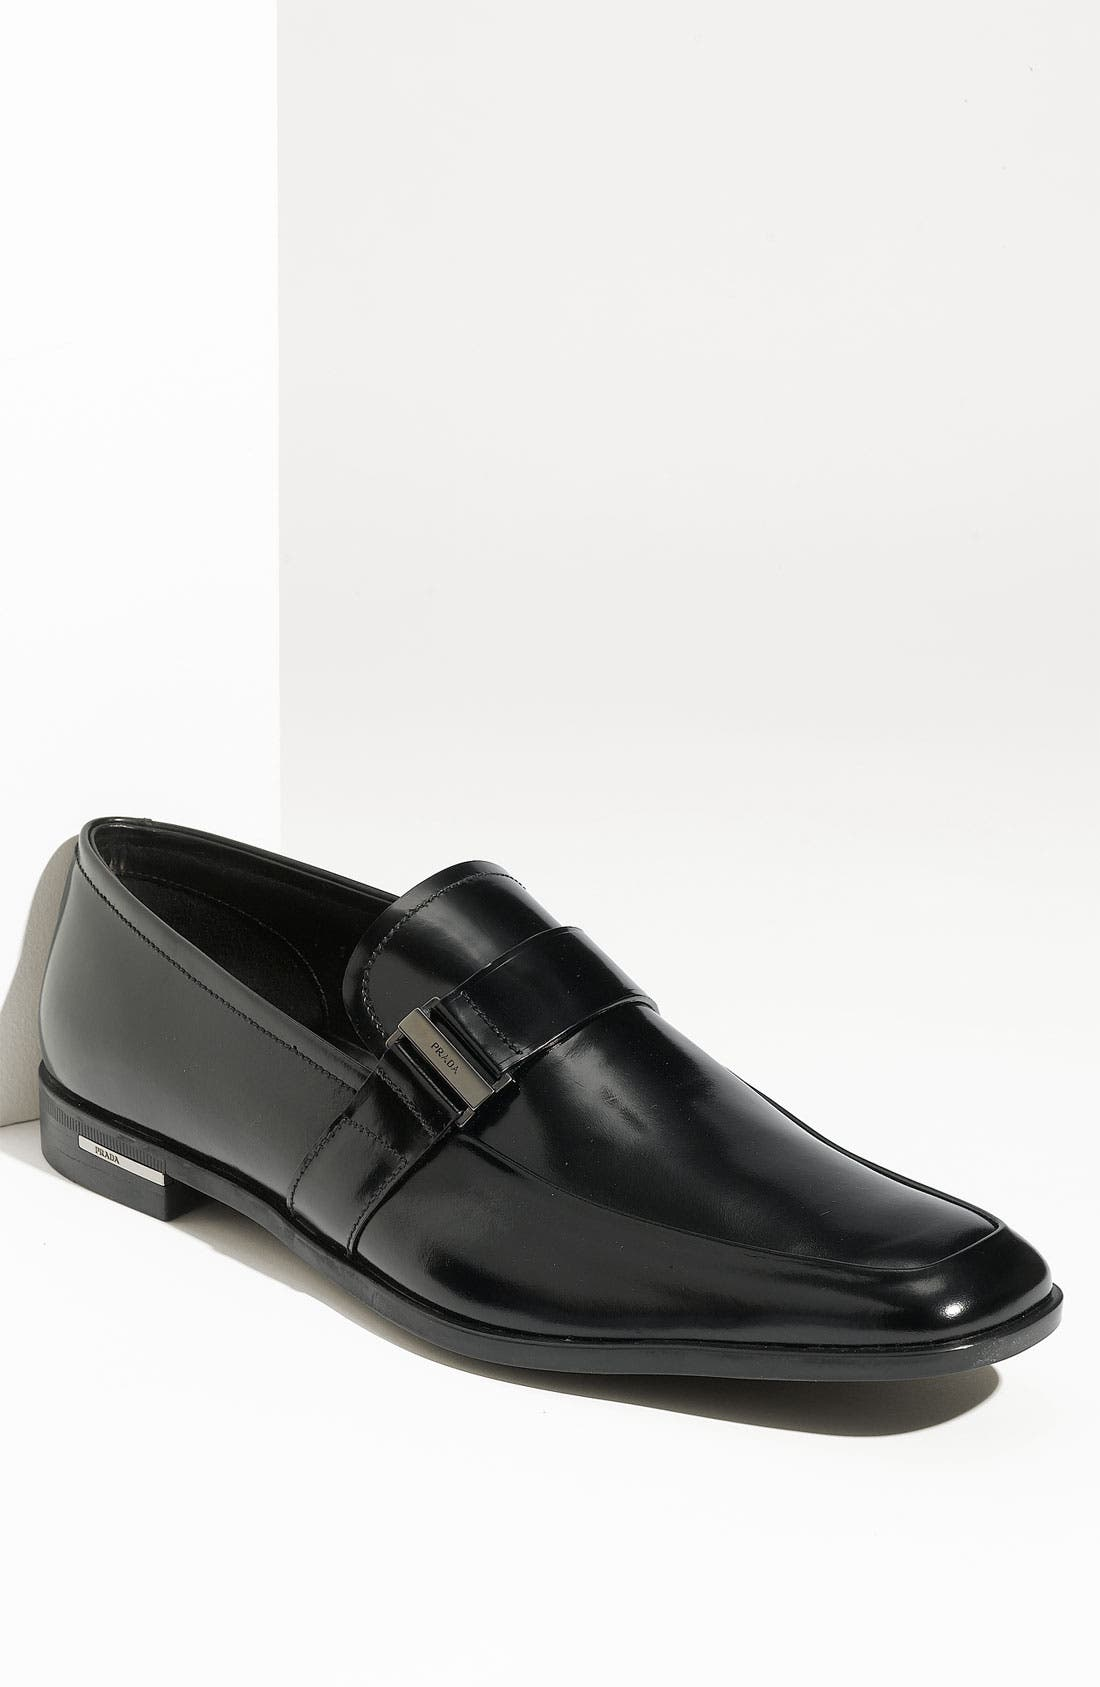 Main Image - Prada Buckled Leather Slip On (Men)